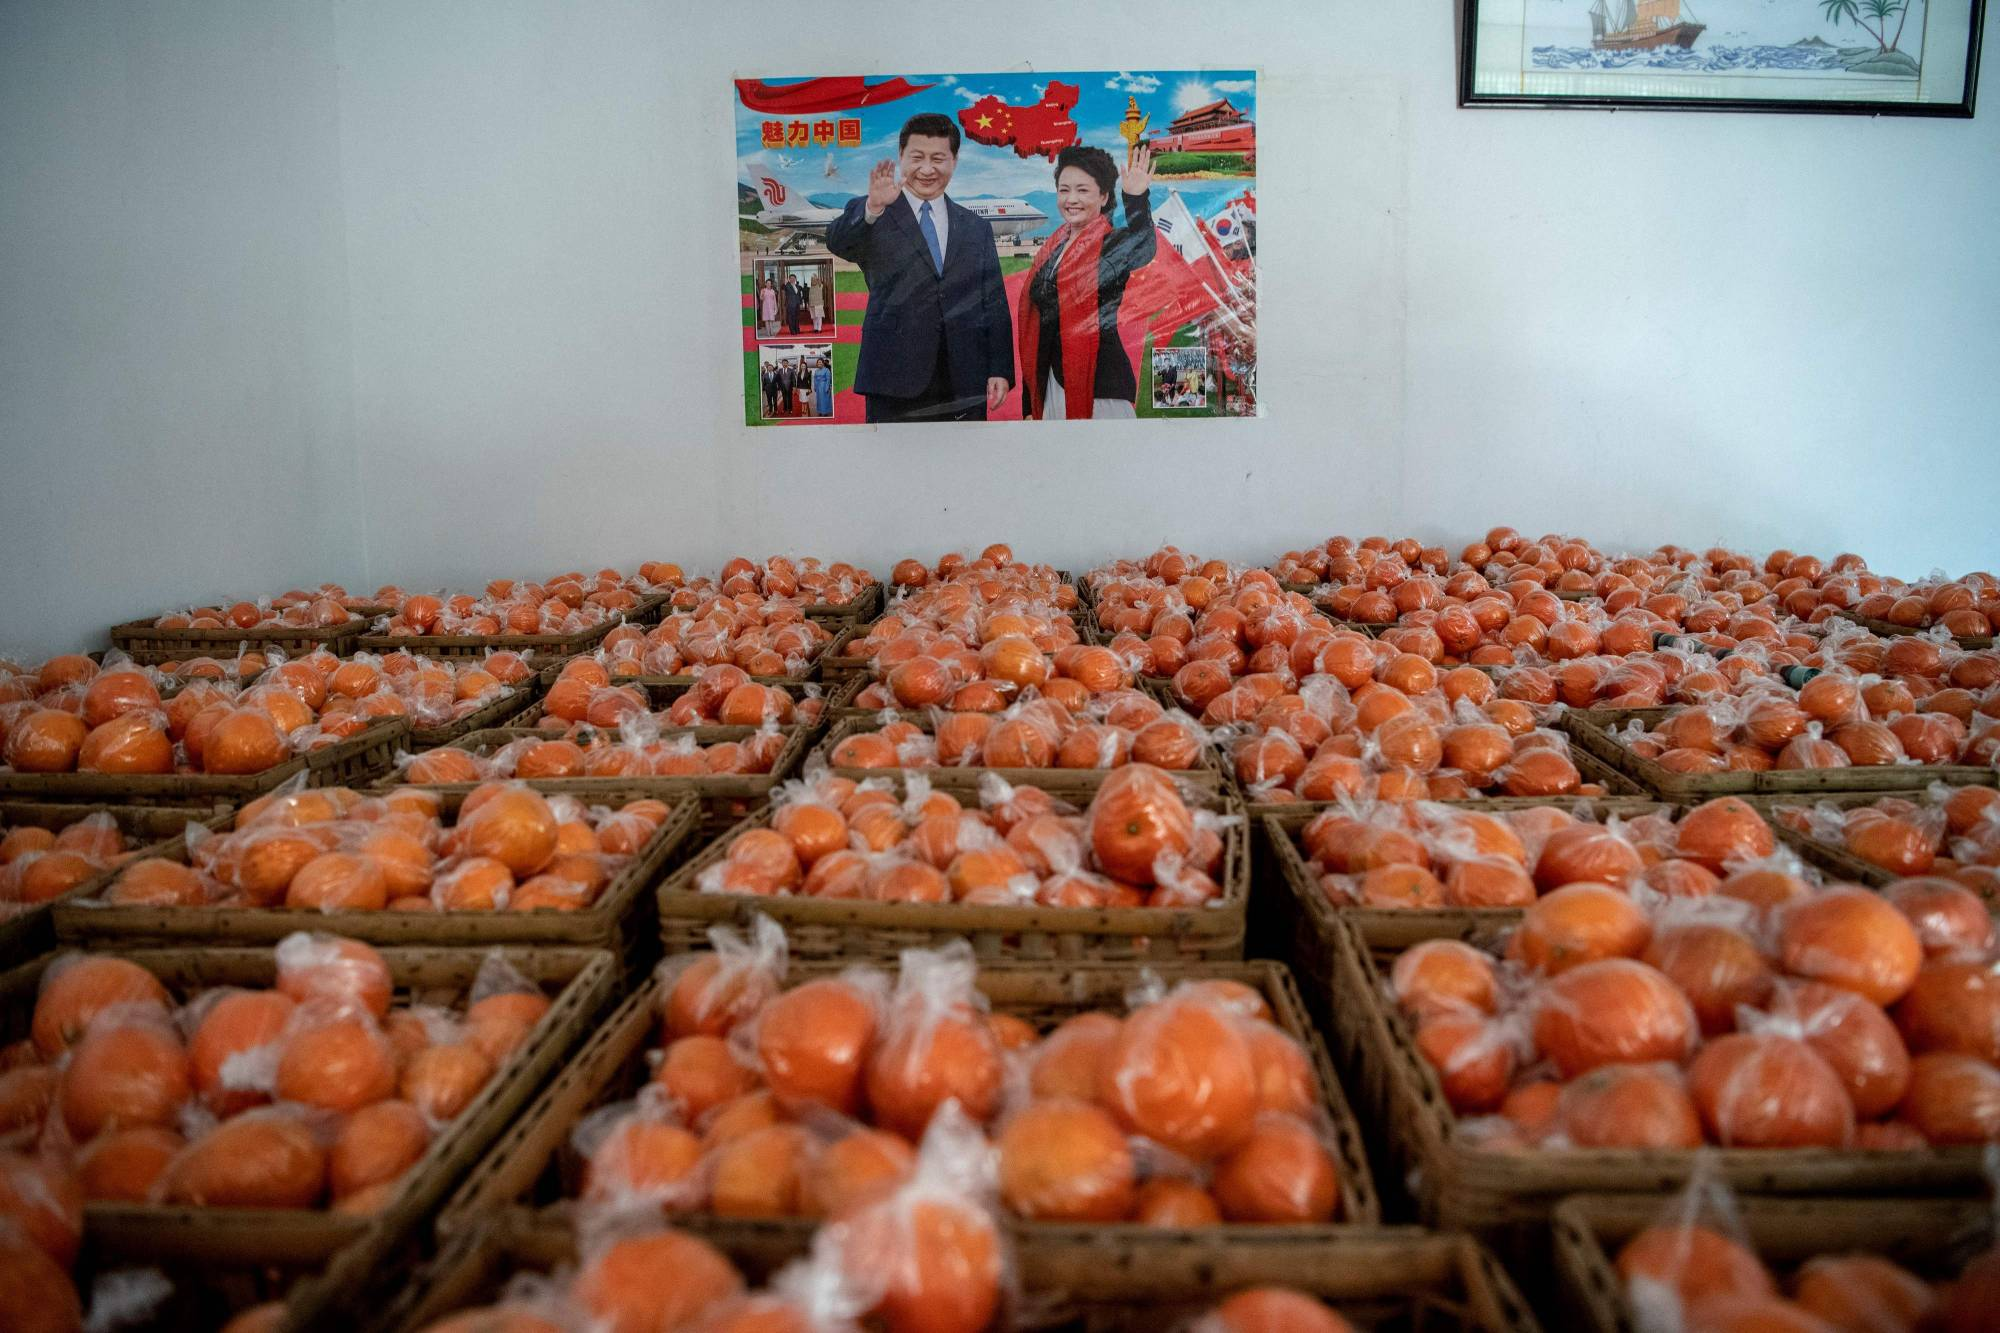 Crates of oranges are seen in front of a poster of Chinese leader Xi Jinping at a warehouse in central China's Hunan province on Jan. 12. | AFP-JIJI